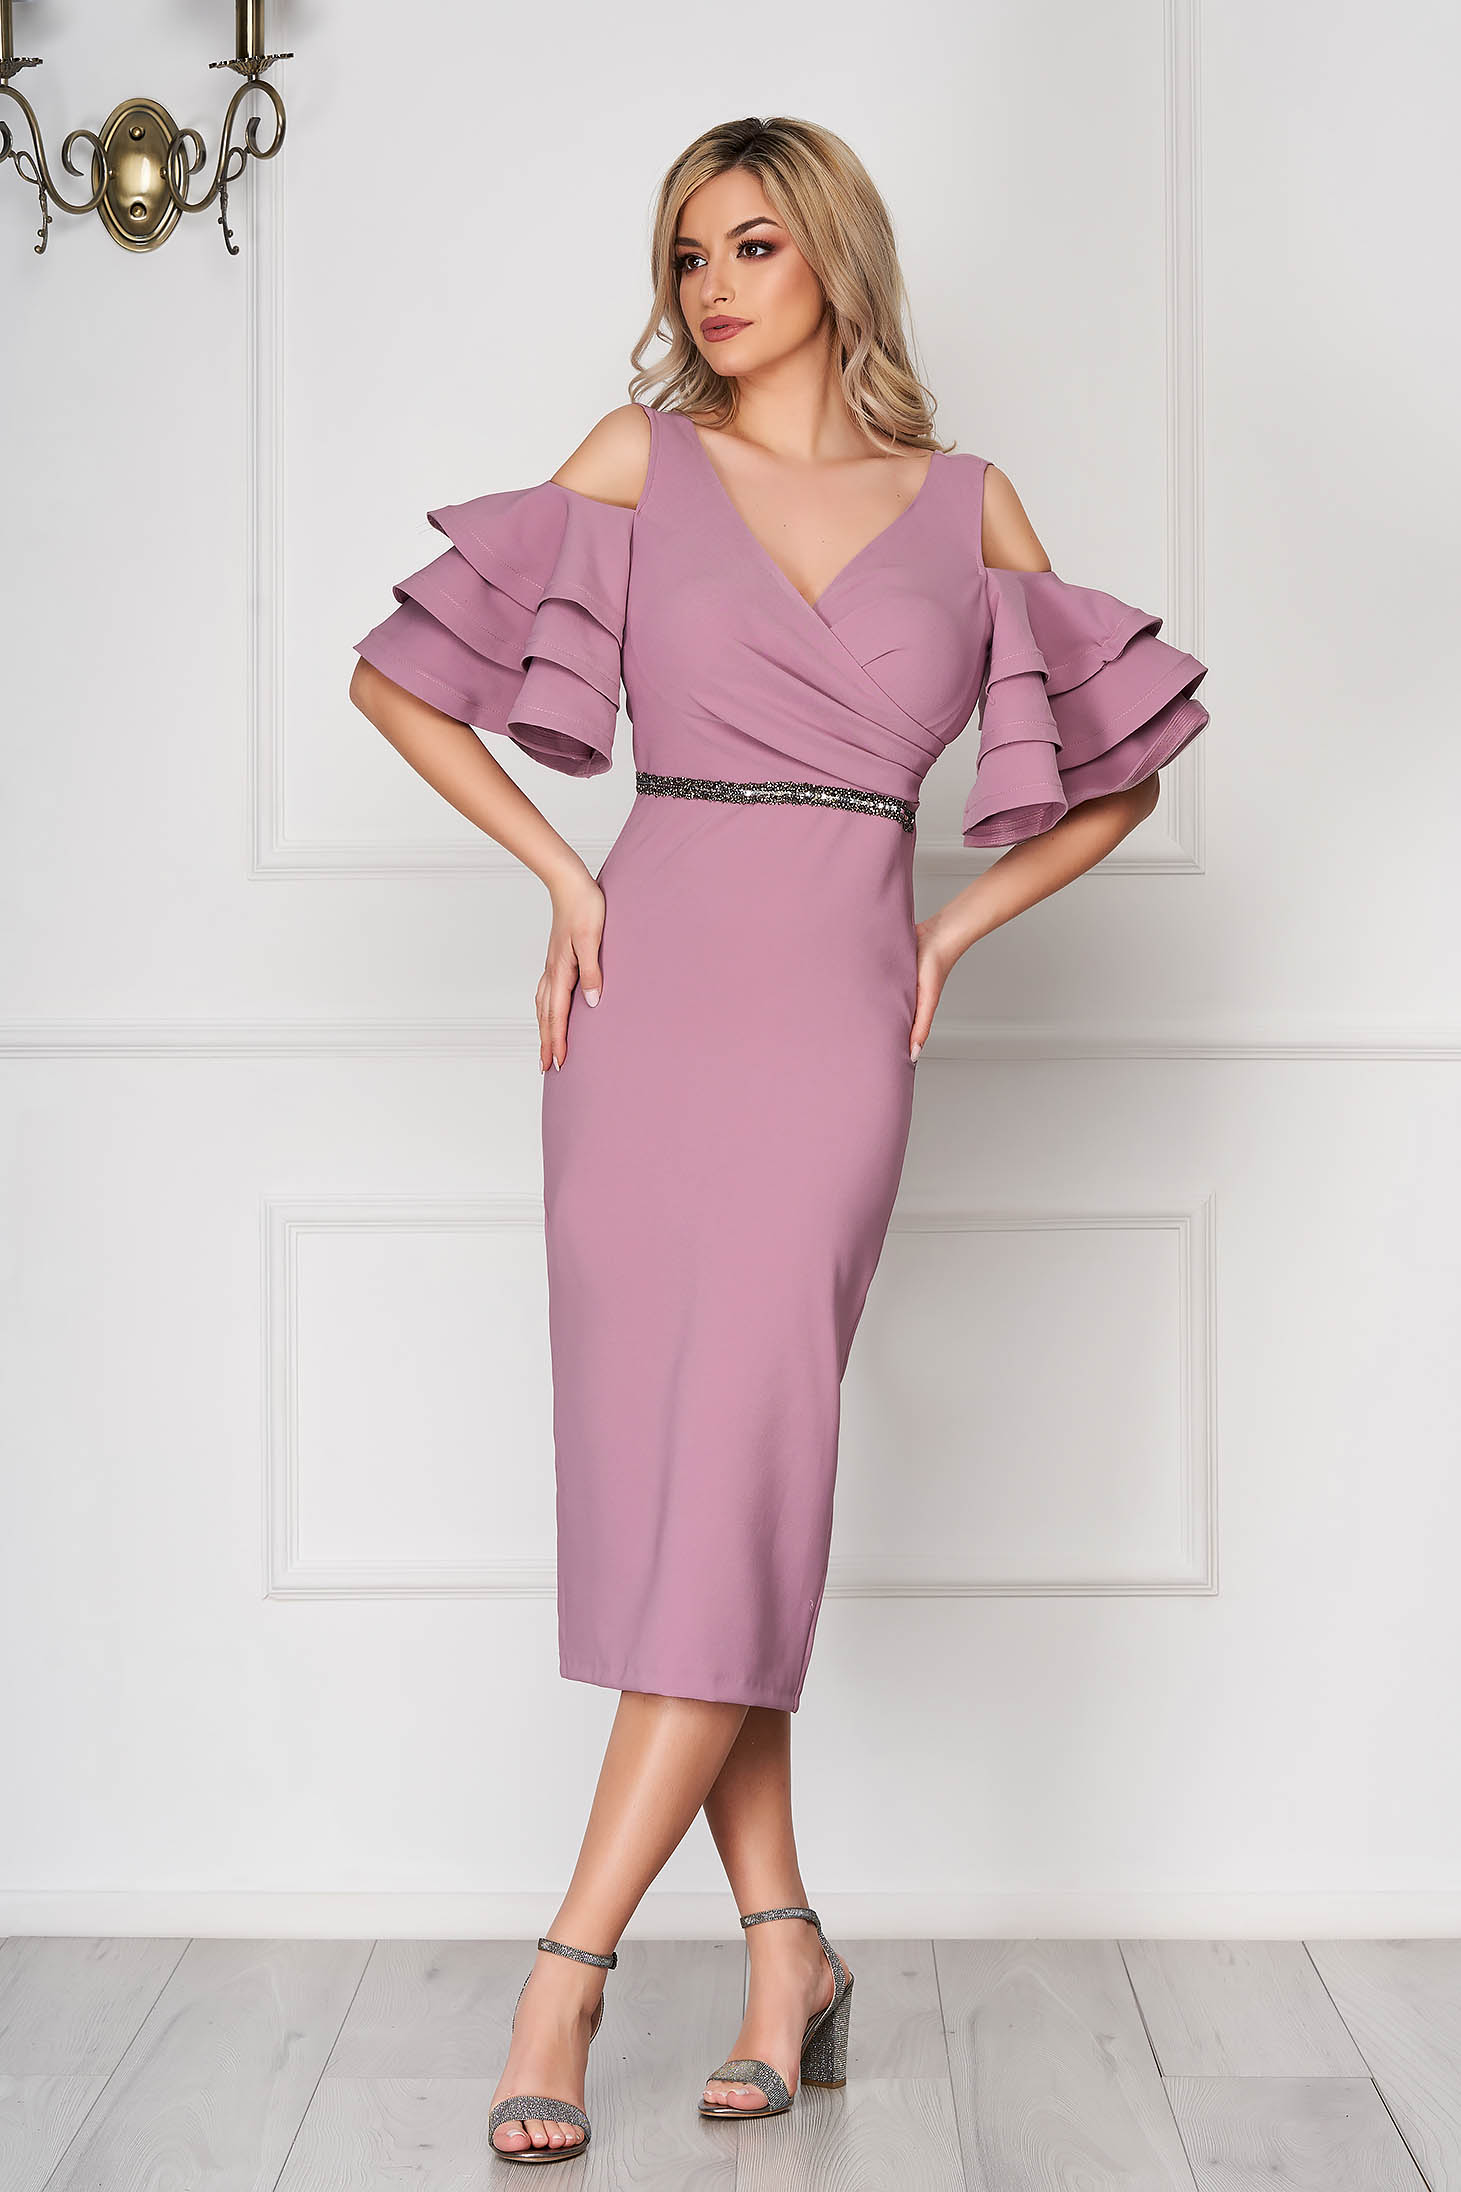 Lila dress occasional midi pencil naked shoulders bell sleeves cloth thin fabric